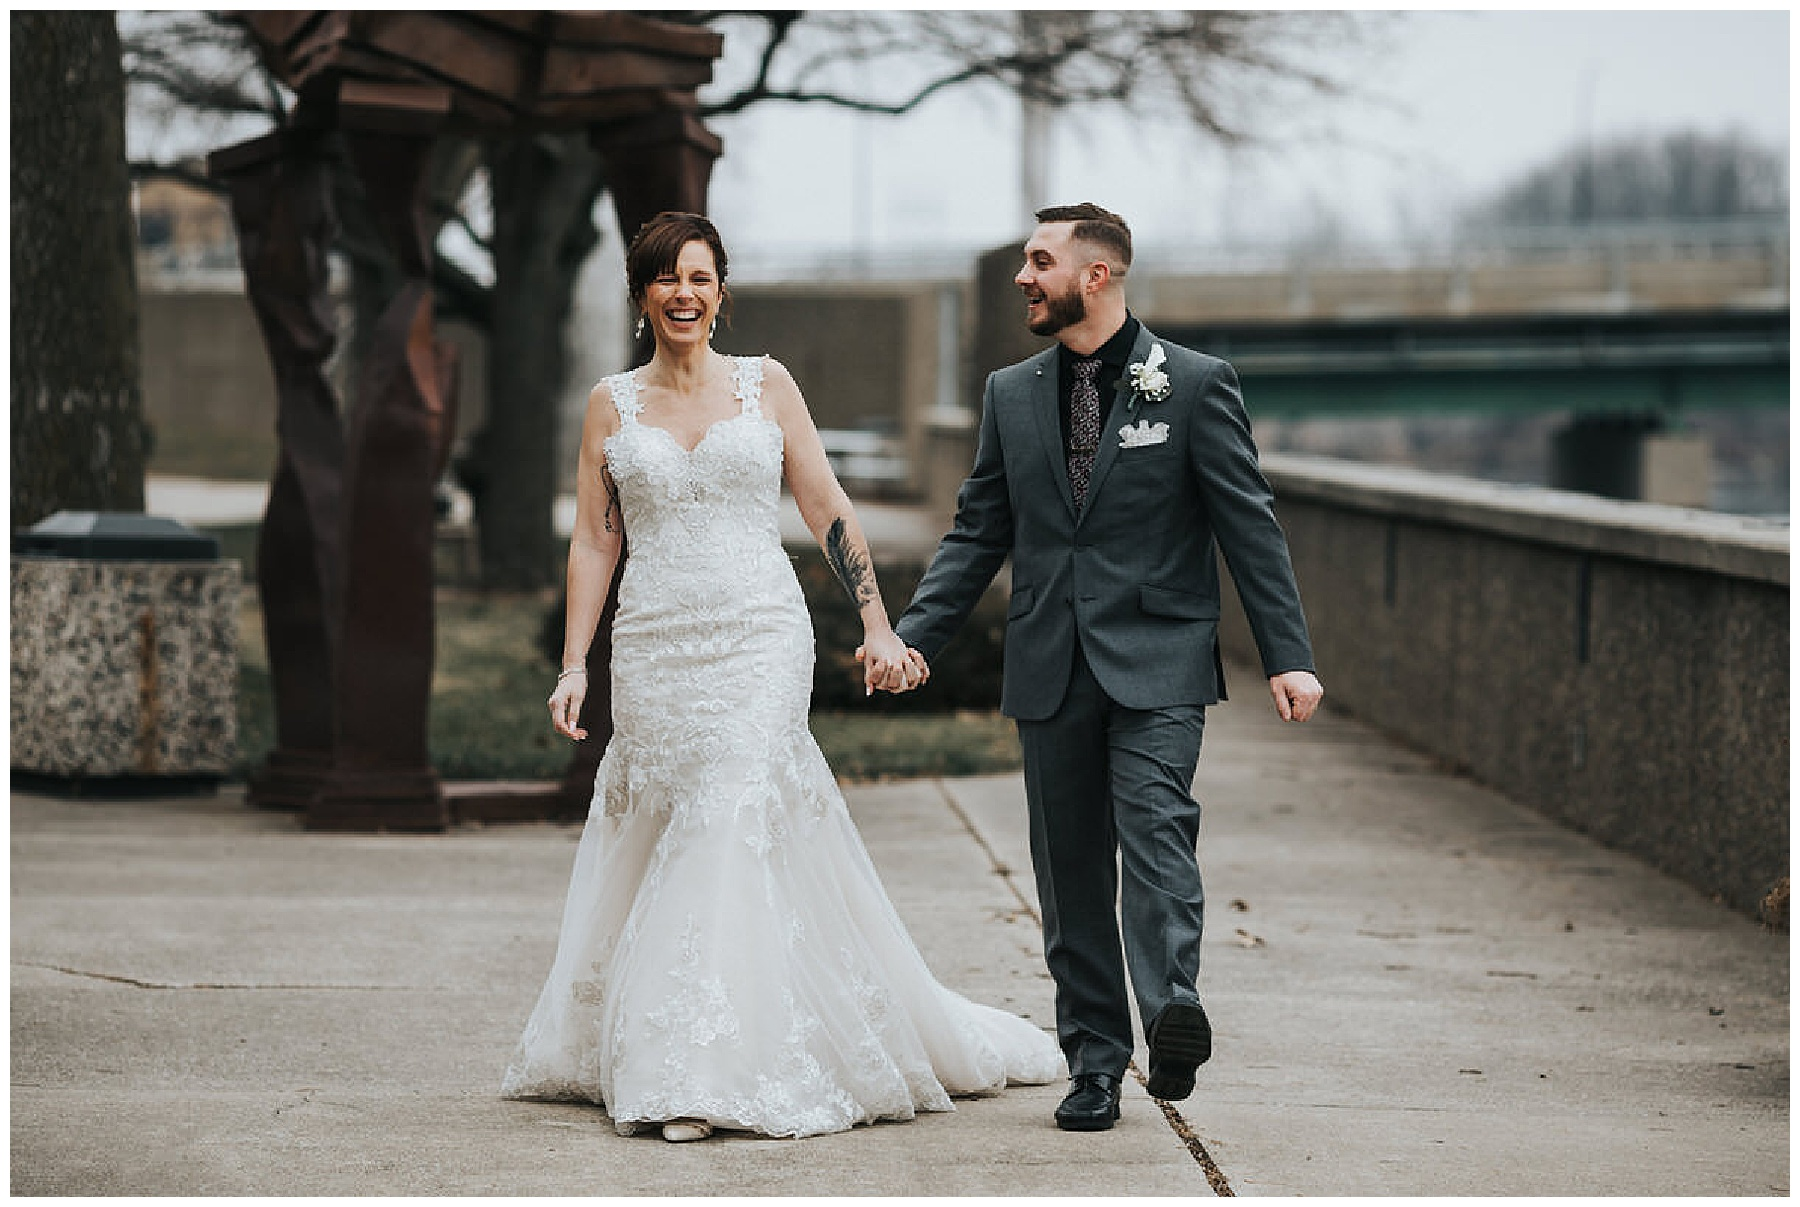 Bride and Groom walk hand in hand at the Waterloo Center for the Arts